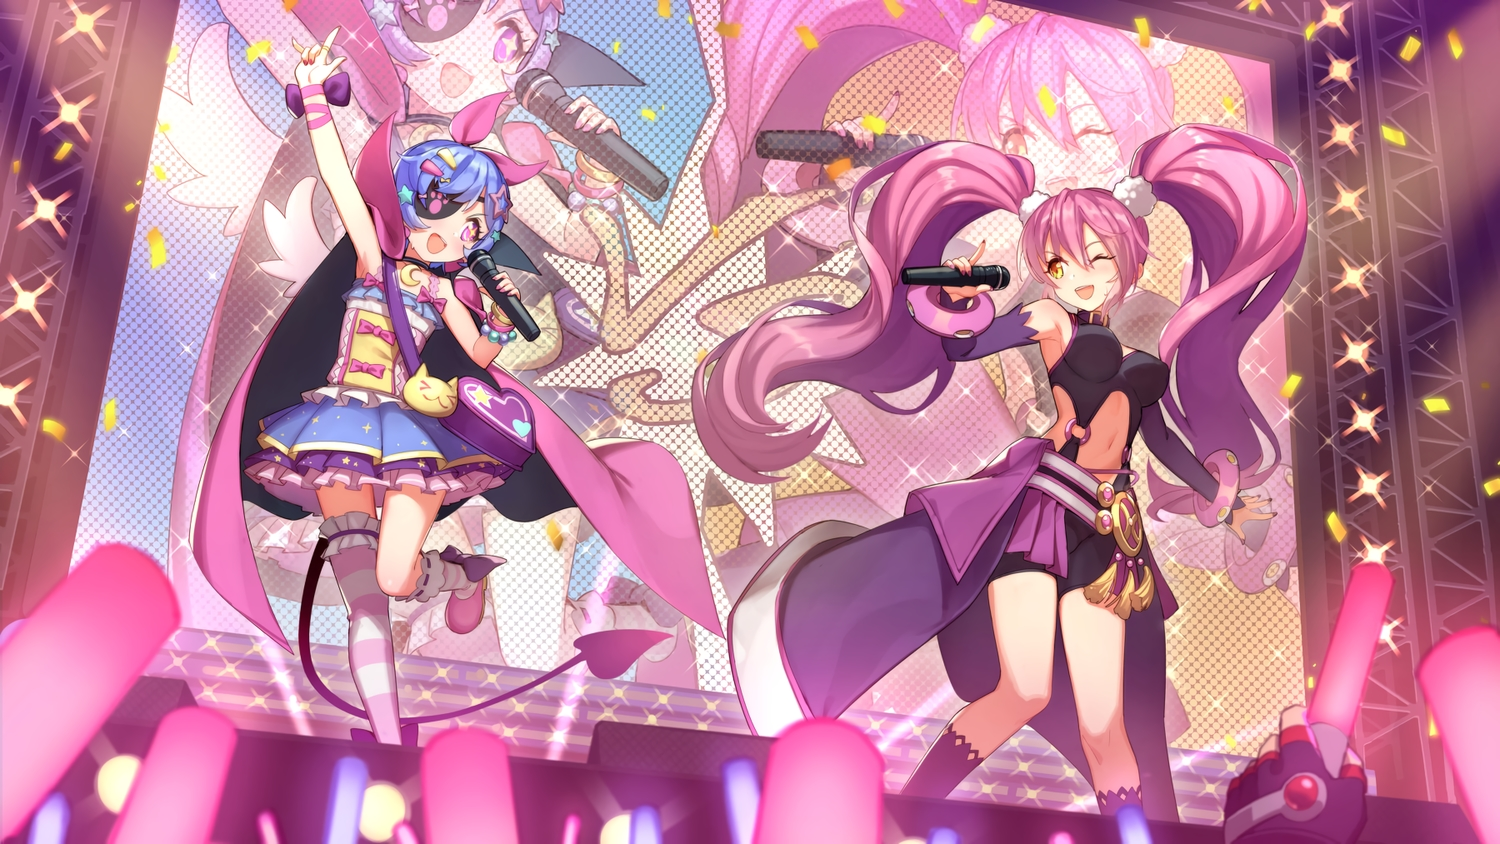 2girls amy_plie blue_hair breasts cape elbow_gloves eyepatch gloves grand_chase loli long_hair microphone orange_eyes pink_eyes pink_hair short_hair sofia_(grand_chase) tagme_(artist) tail thighhighs twintails